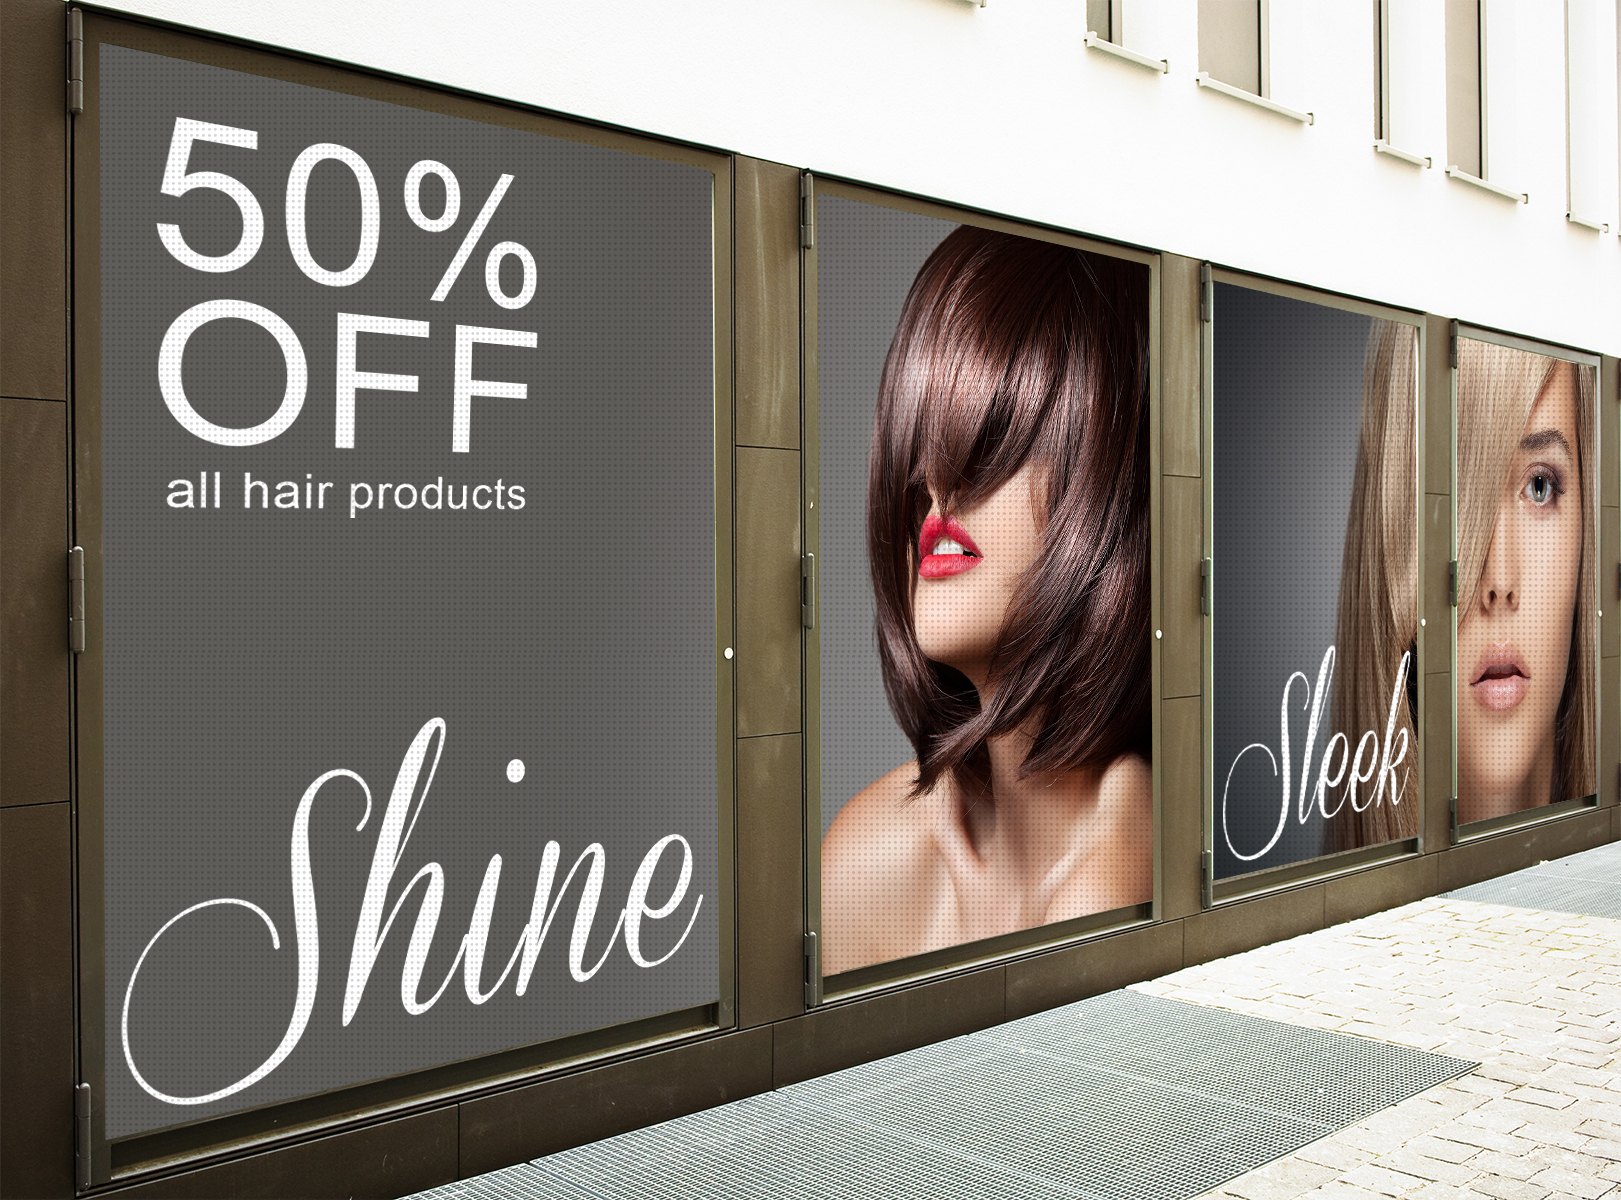 Window Perf Sale Signage Ideas | LawnSigns.com